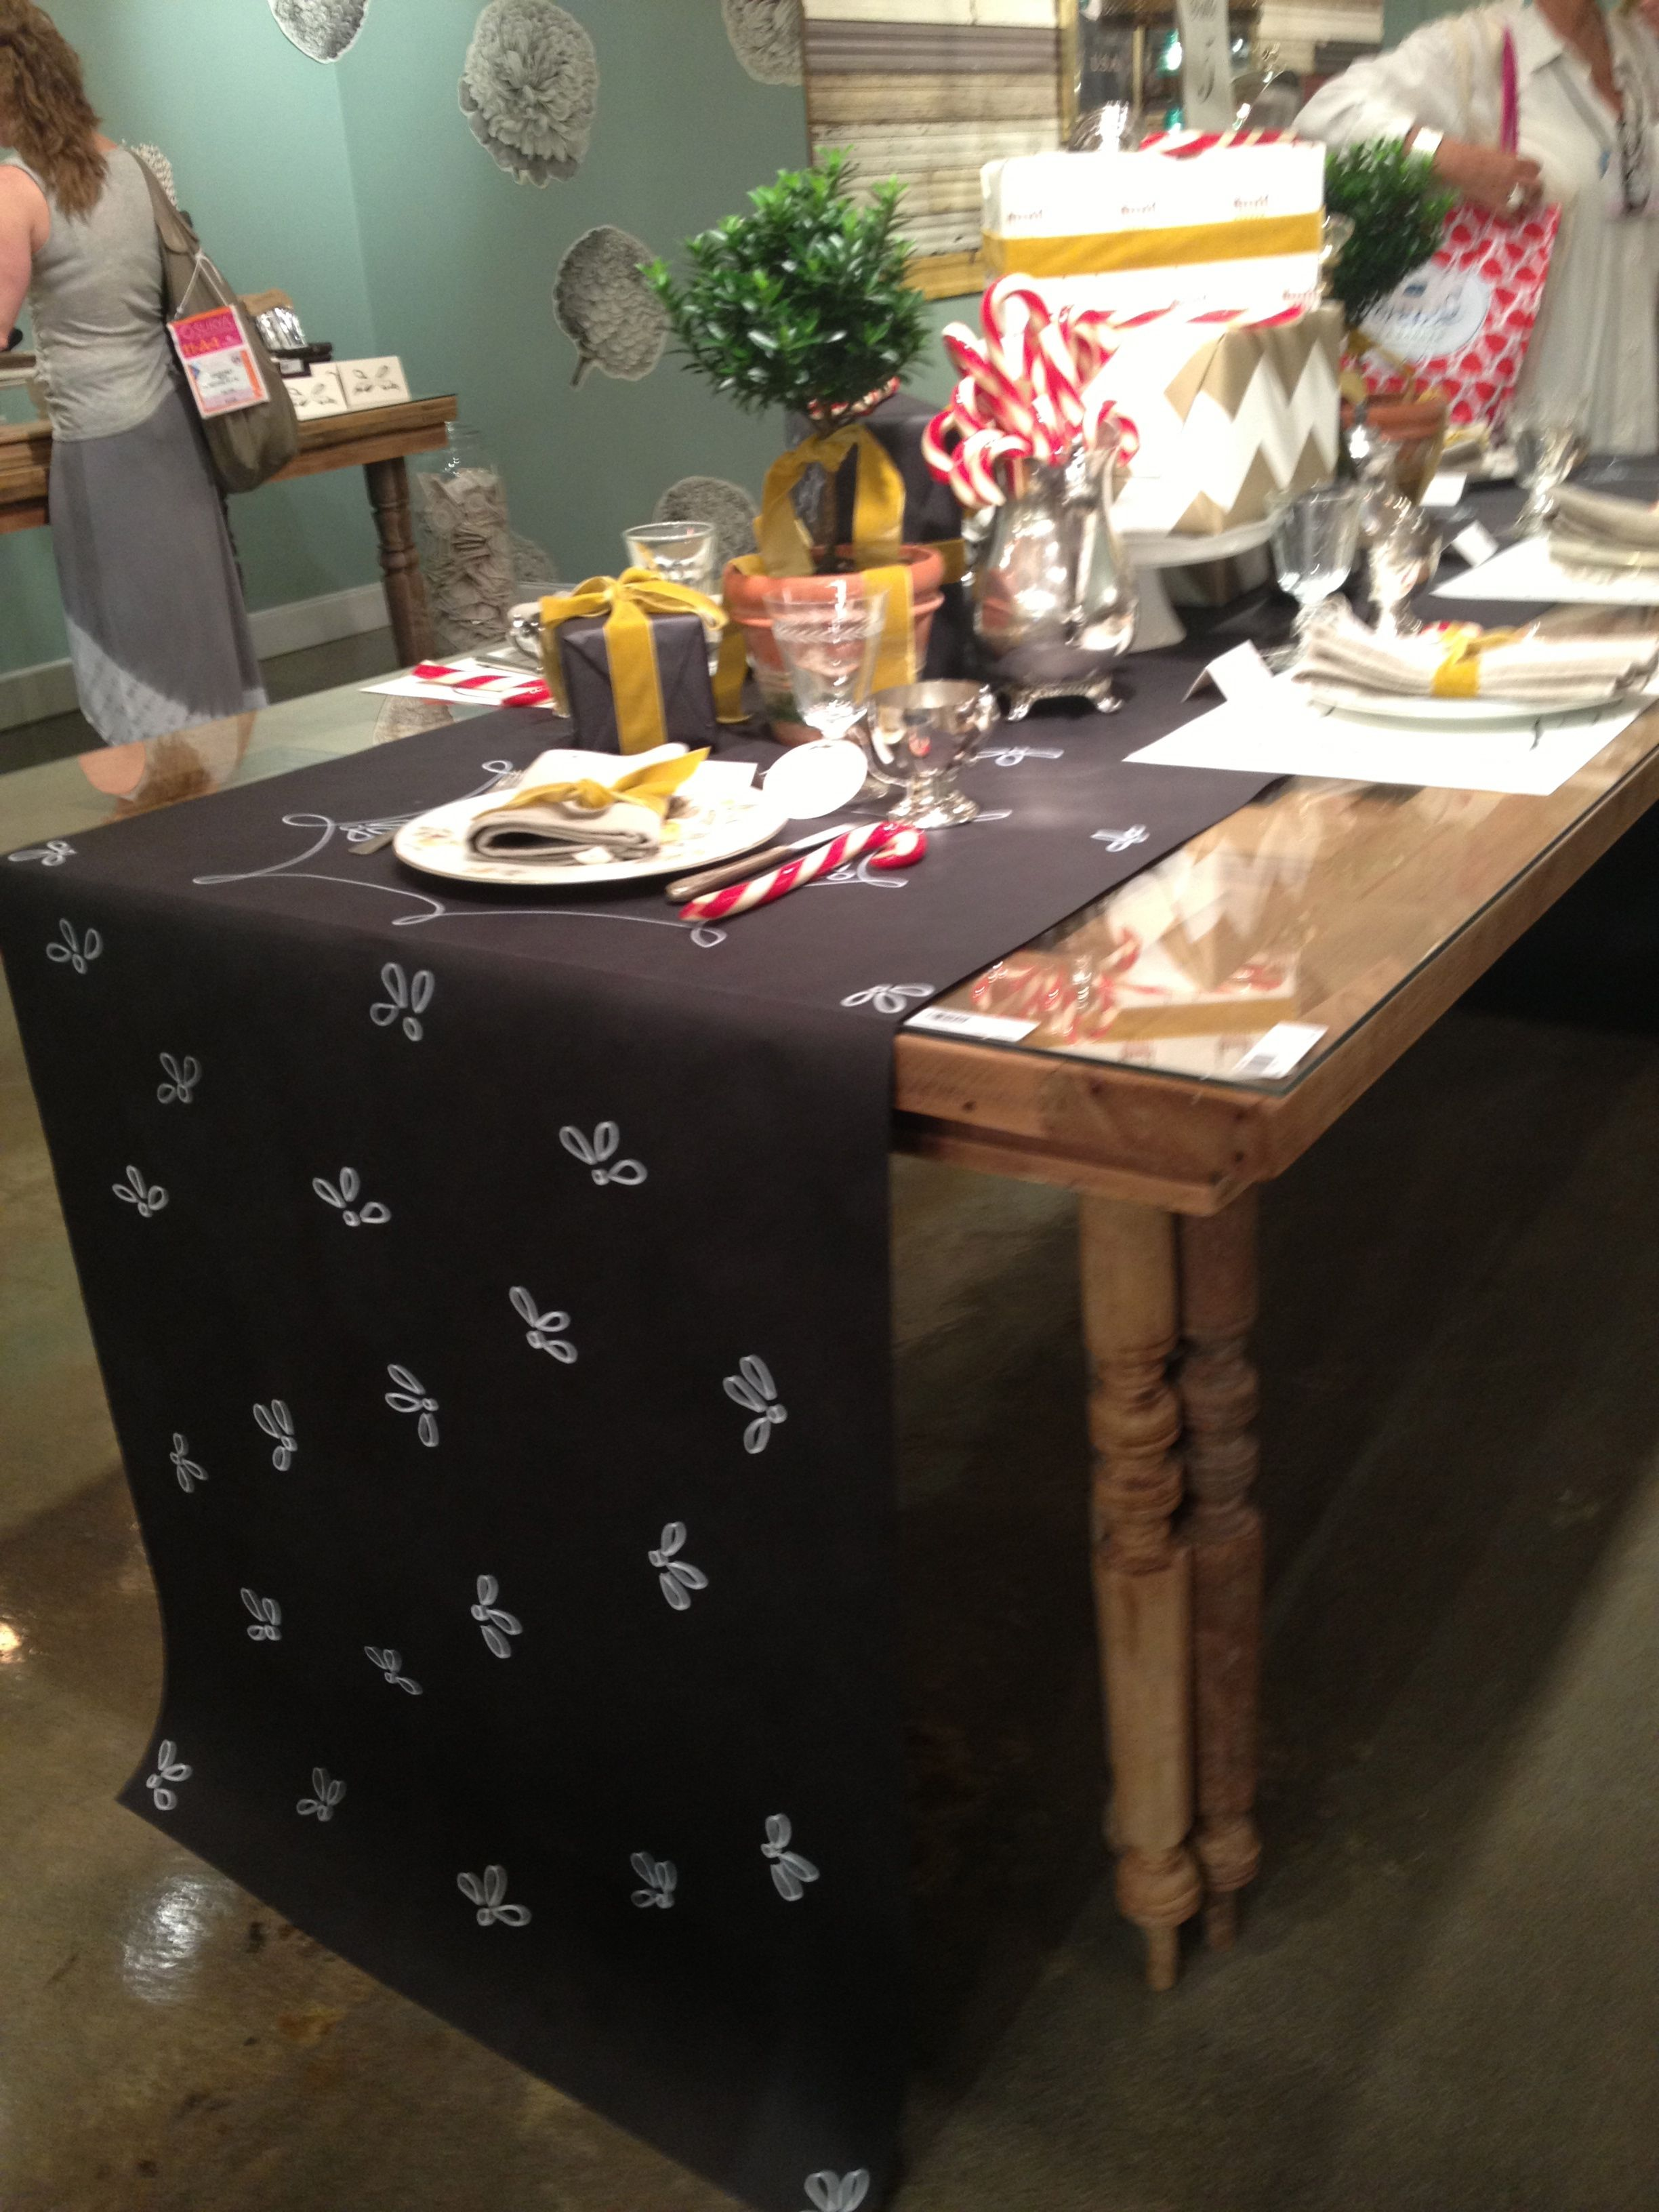 Kitchen Papers This Great Chalkboard Table Runner Can Be Decorated